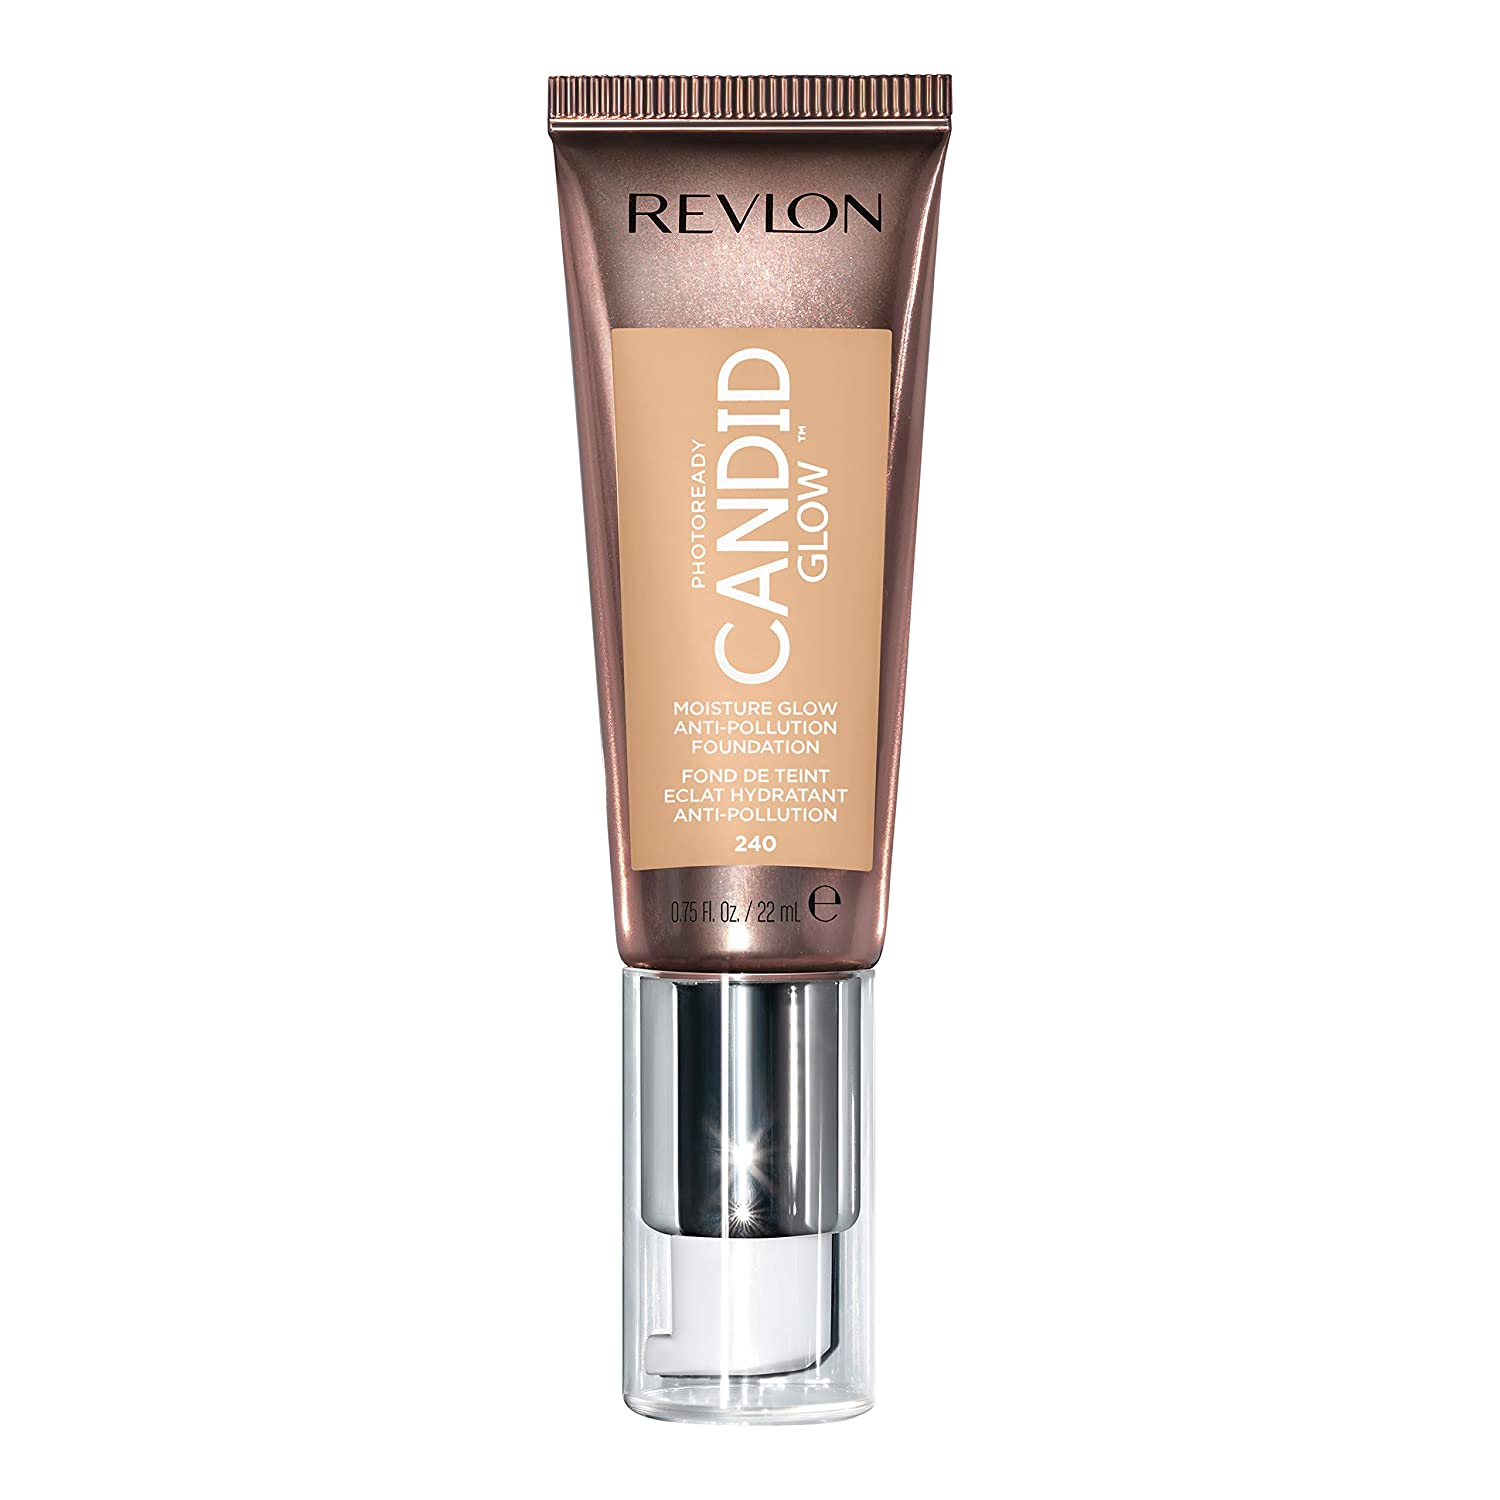 Revlon PhotoReady Candid Glow Moisture Glow Anti-Pollution Foundation with Vitamin E & Prickly Pear Oil, Anti-Blue Light Ingredients, without Parabens, Pthalates, & Fragrances, Natural Beige, 0.75 oz